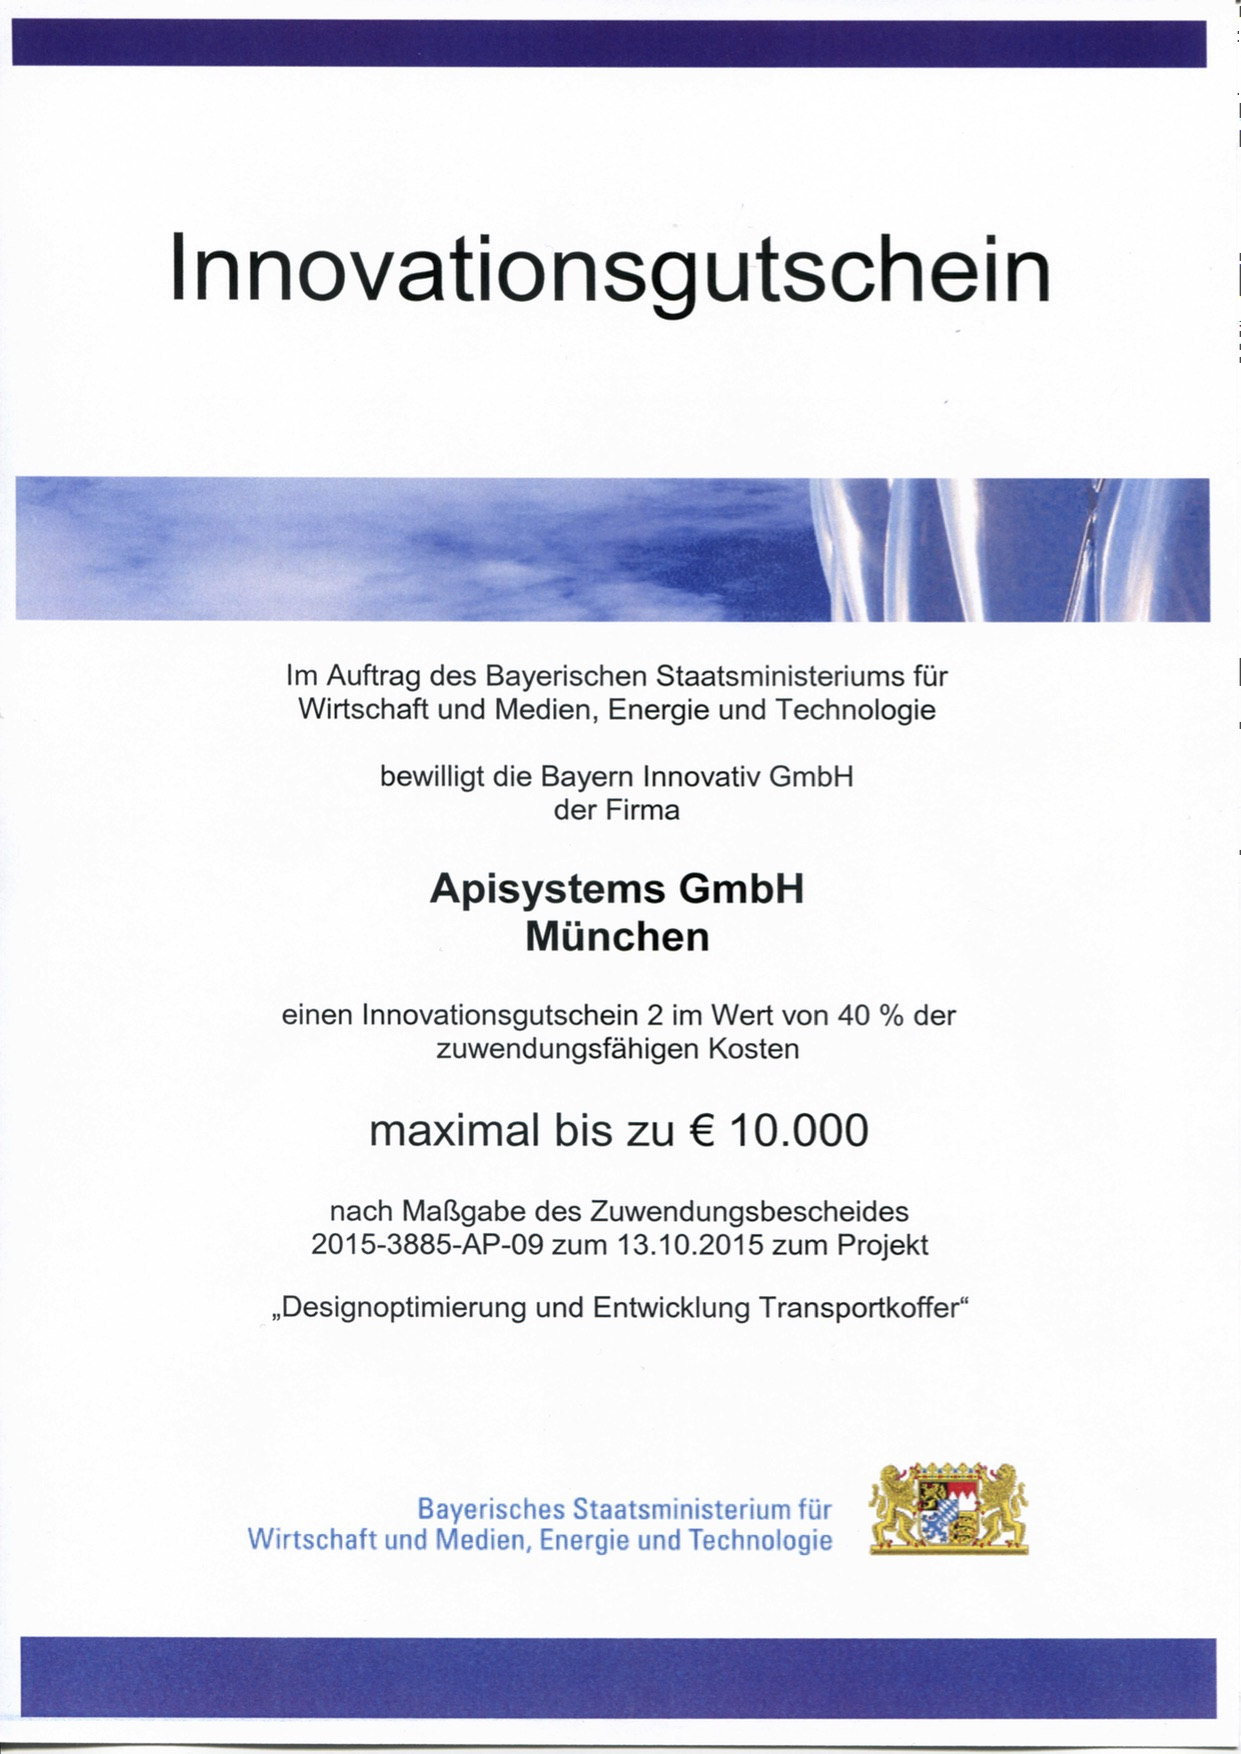 Innovationsgutschein II